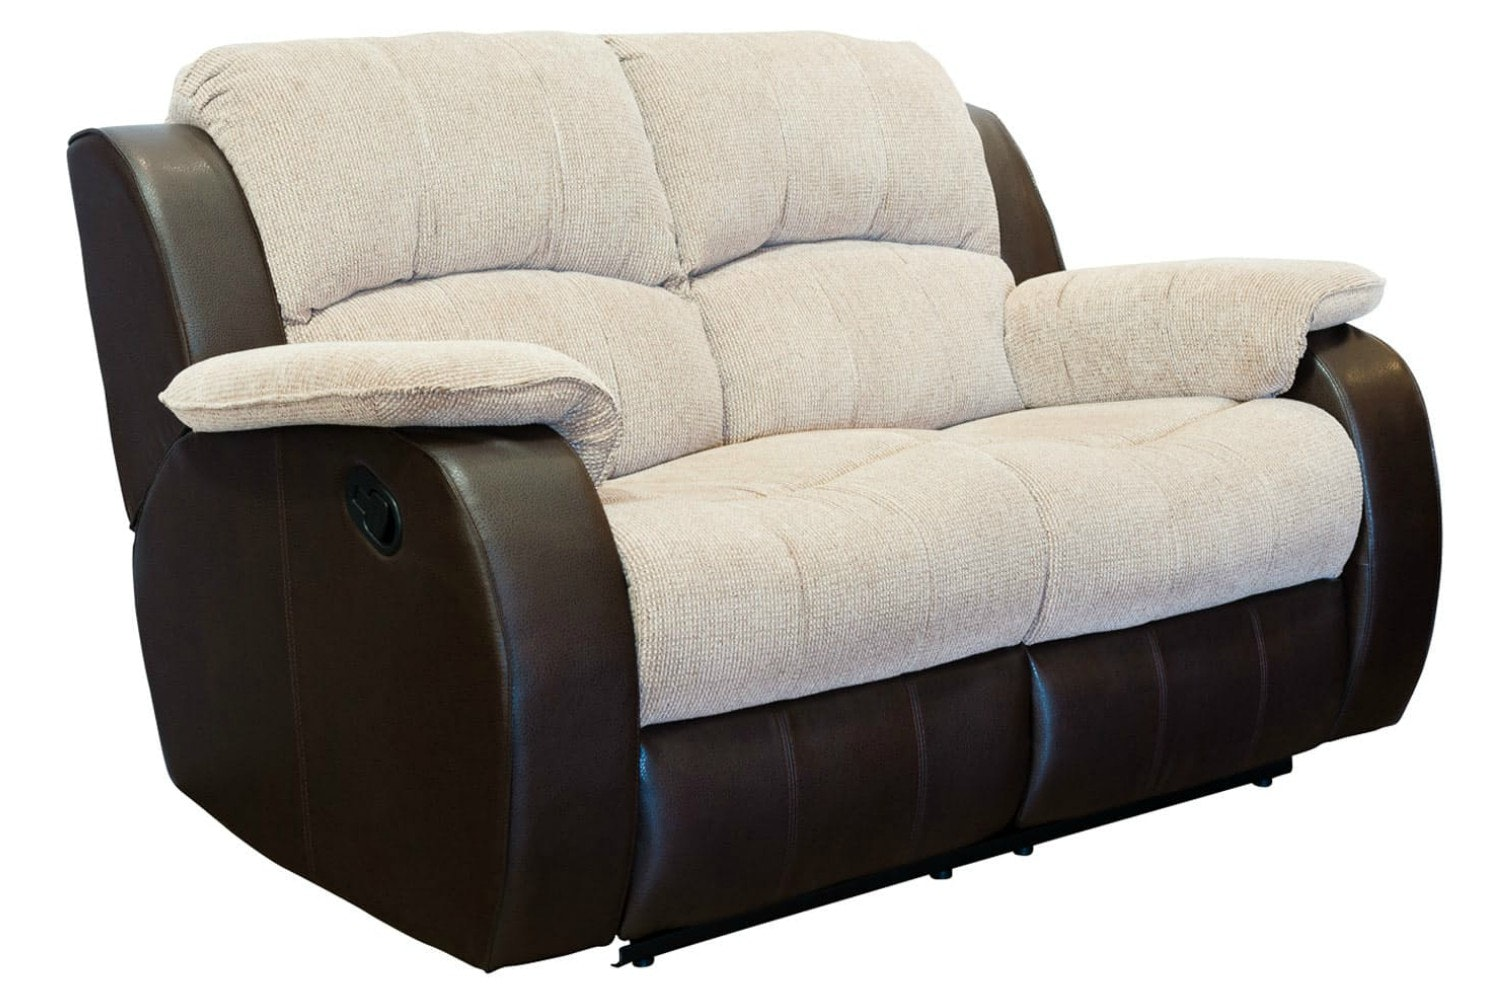 Kayde 2 Seater Recliner Sofa